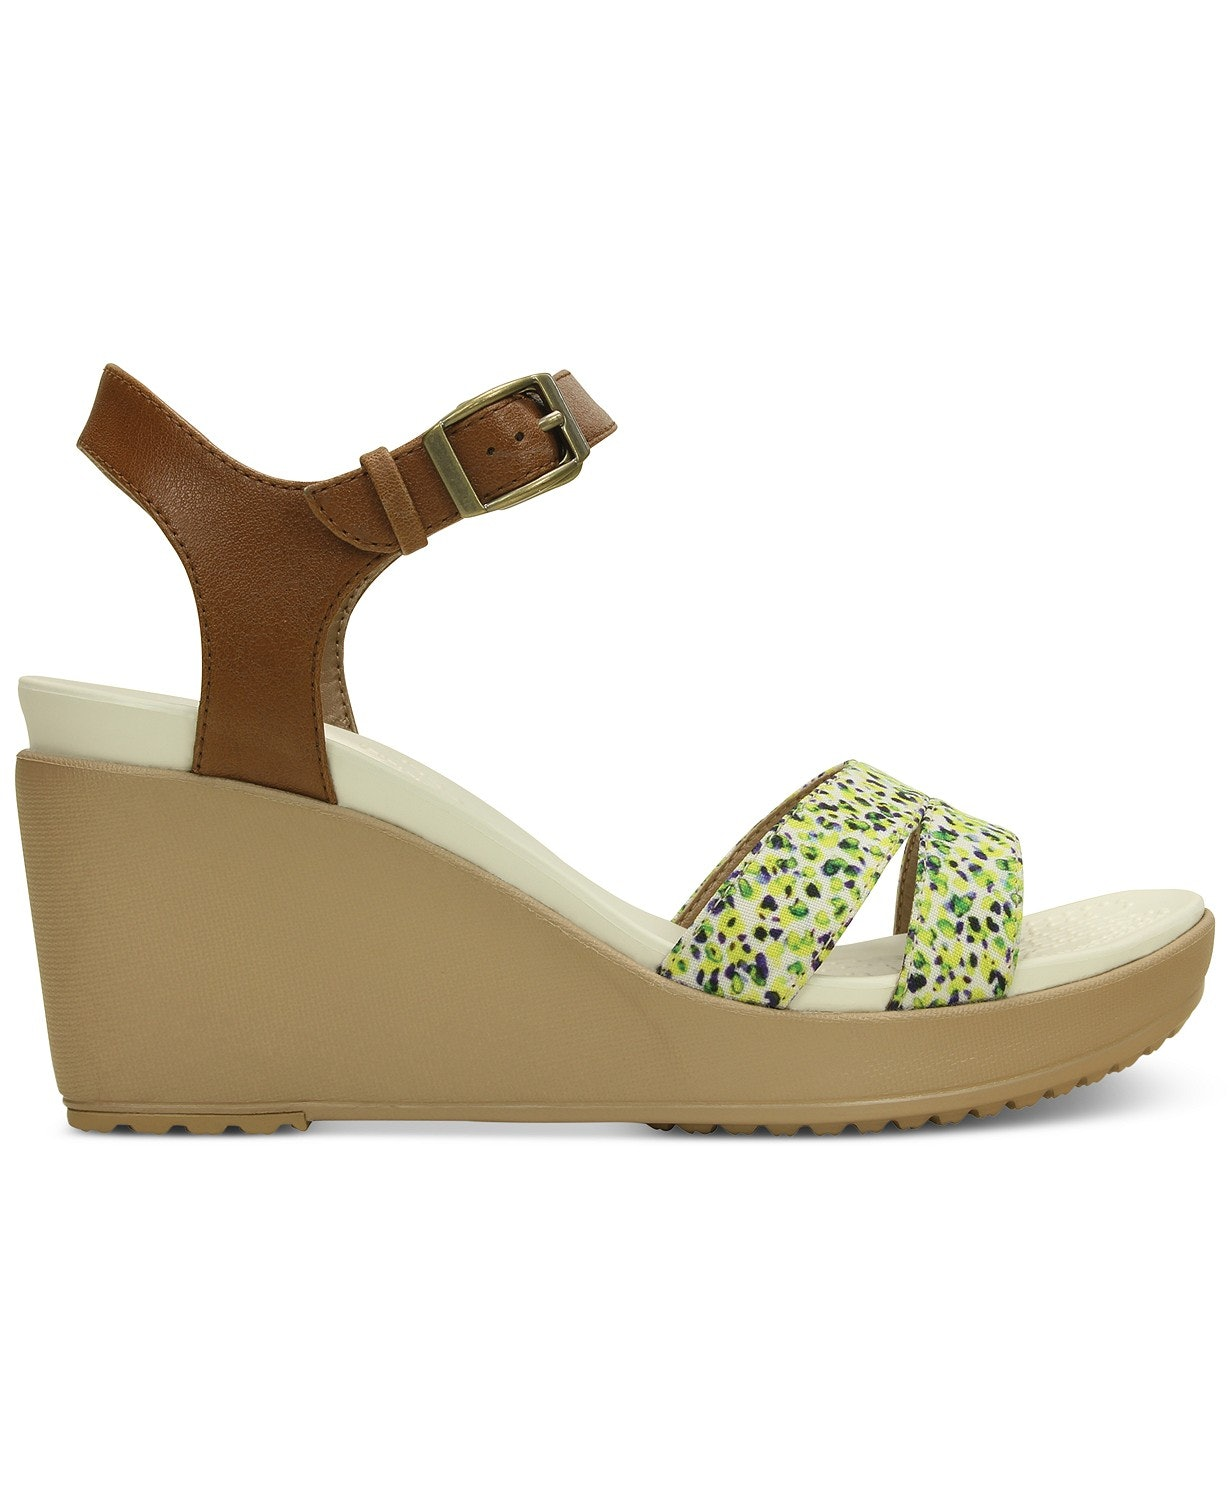 Crocs Where Do To Exist High Heeled Buy BecauseYesThey dWBoxeCr